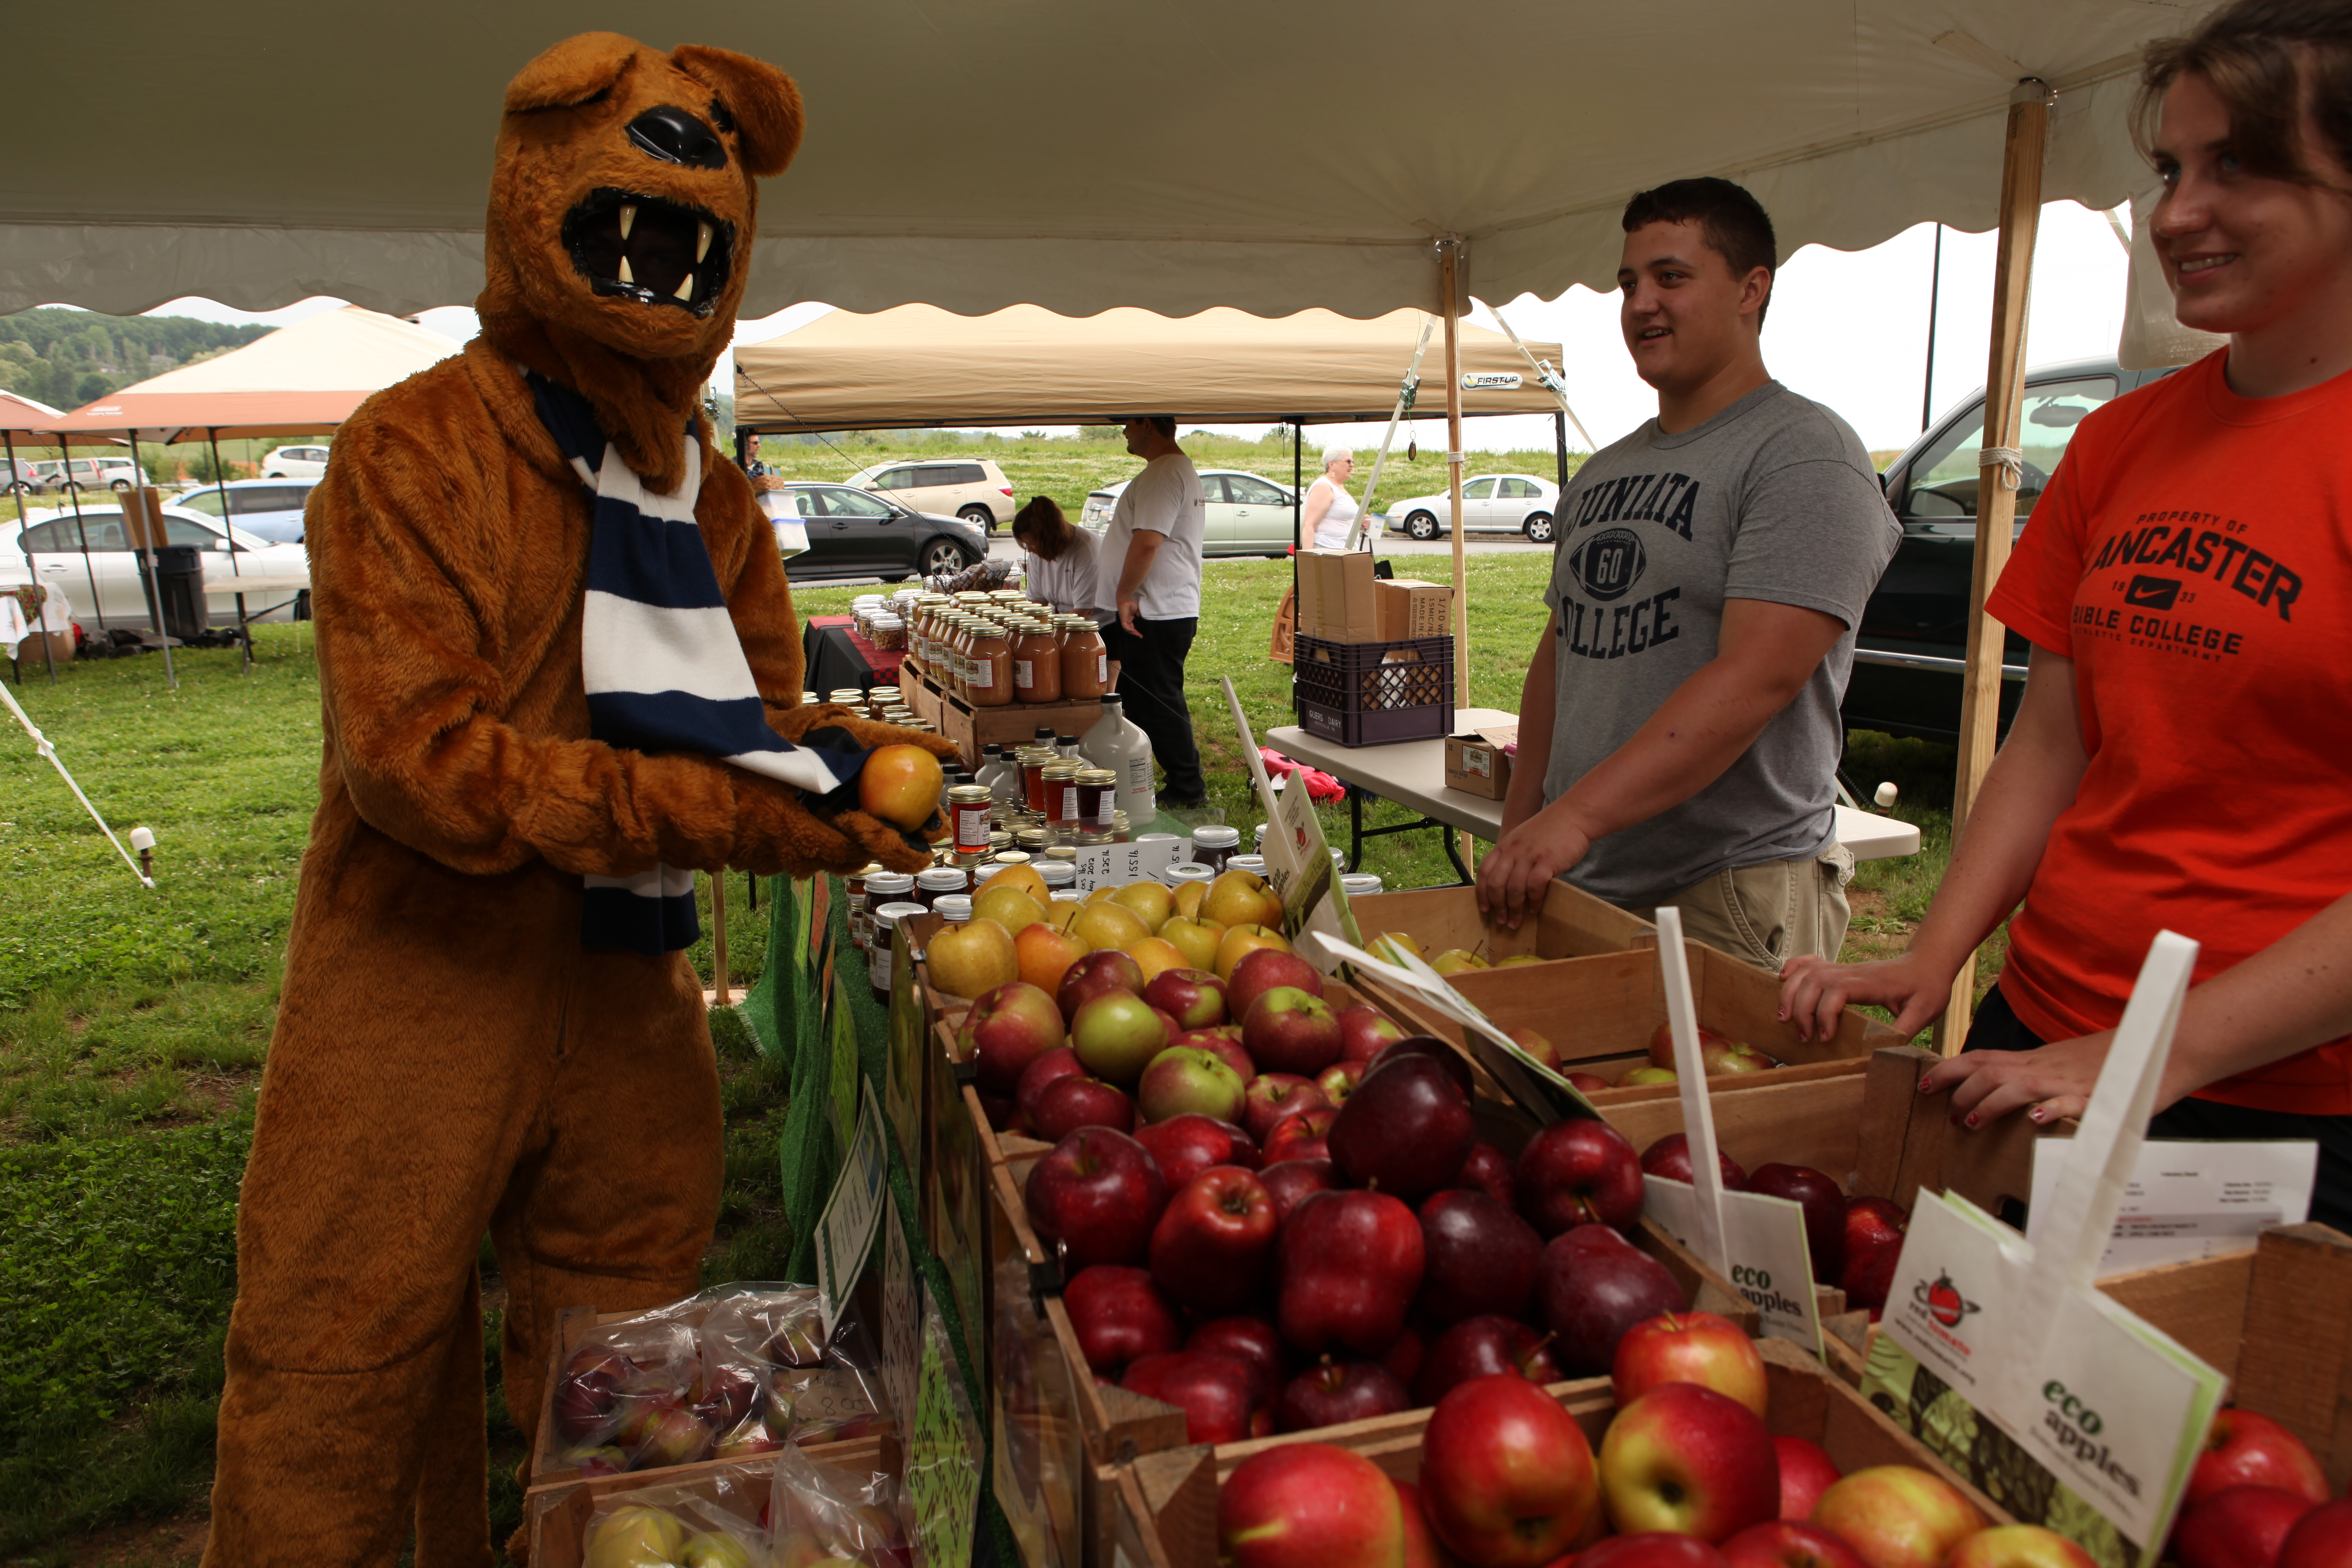 nittany lion with students and vegetables